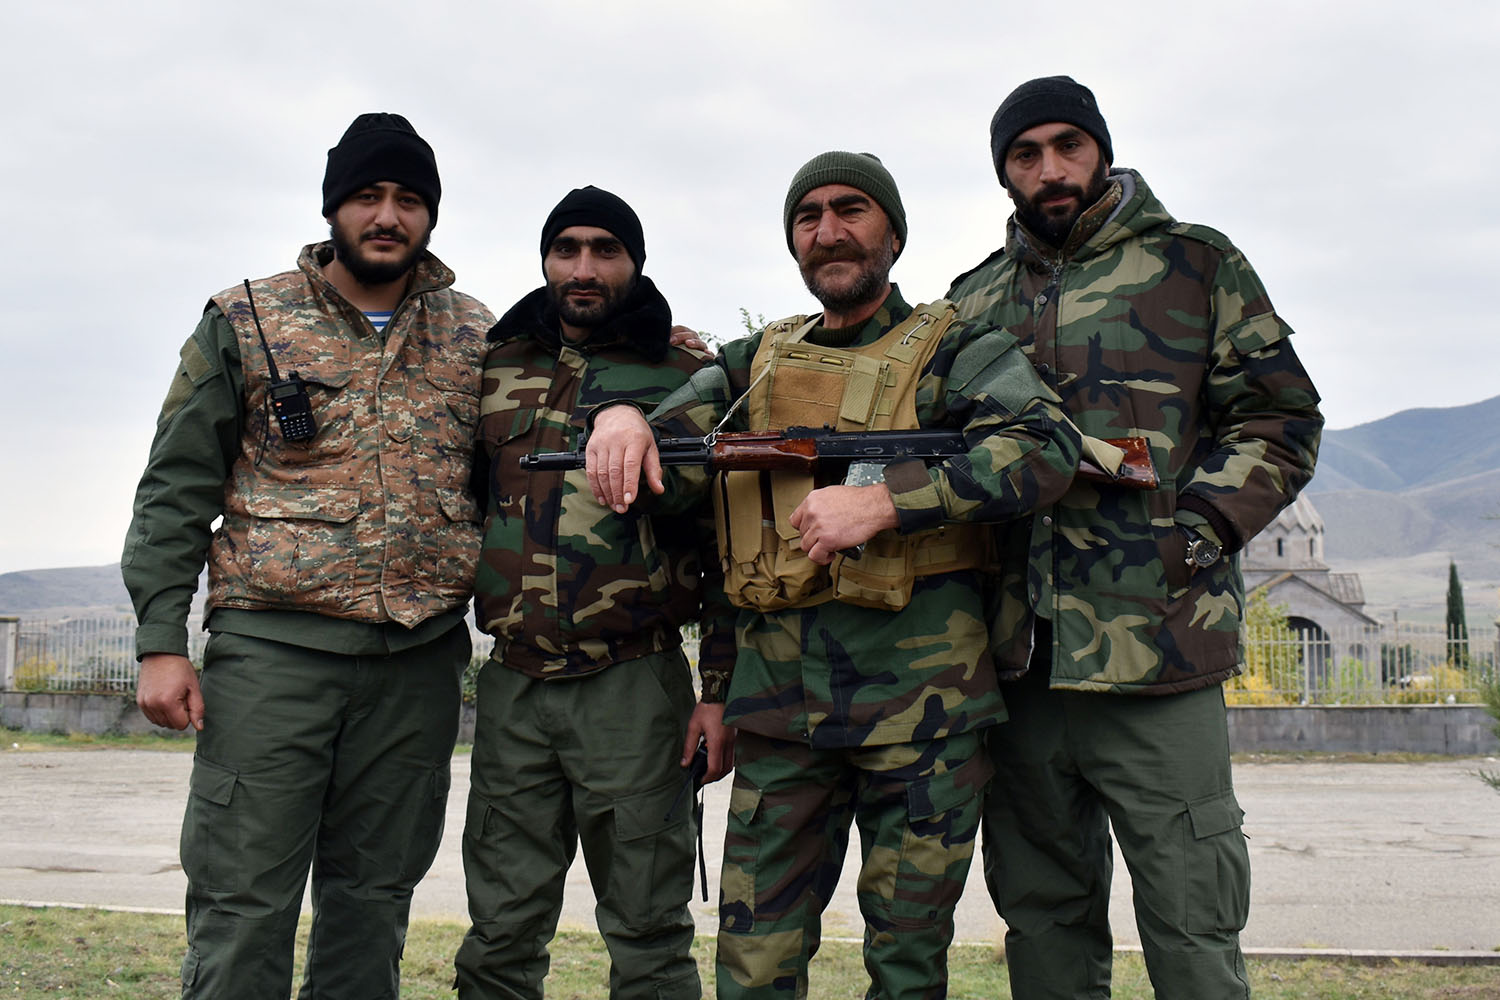 Volunteer fighters pose with well-known rebel fighter Pavel Manukyan (second from right) in the town of Askeran, near what was the front line in Nagorno-Karabakh on Nov. 15.